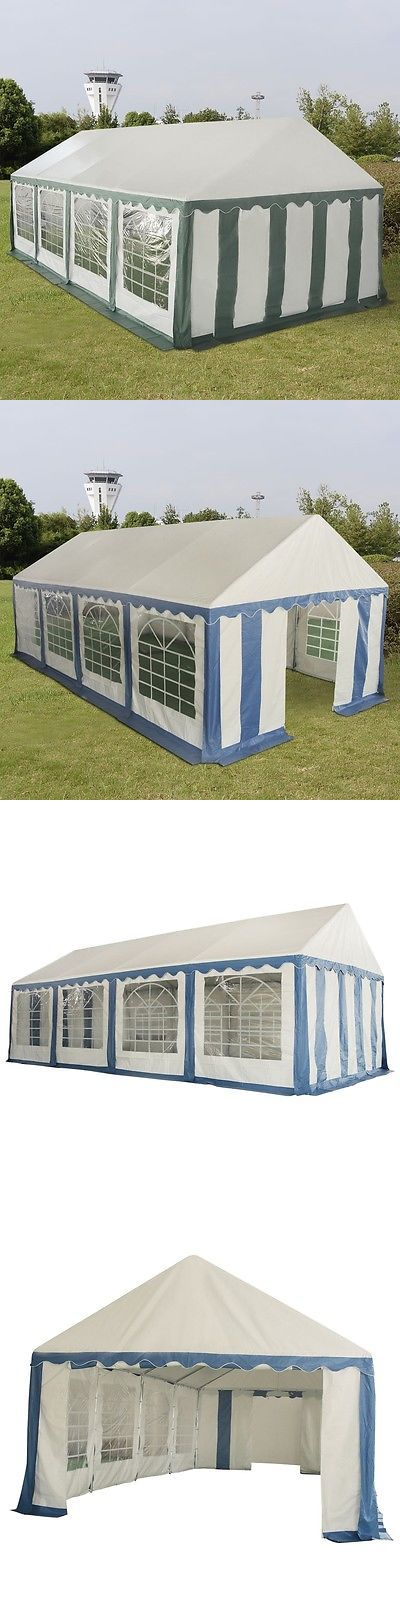 Marquees and Tents 180994: 13 X26 Outdoor Professional Tent Patio Gazebo Canopy Party Wedding Use Sunproof -> BUY IT NOW ONLY: $486.83 on eBay!